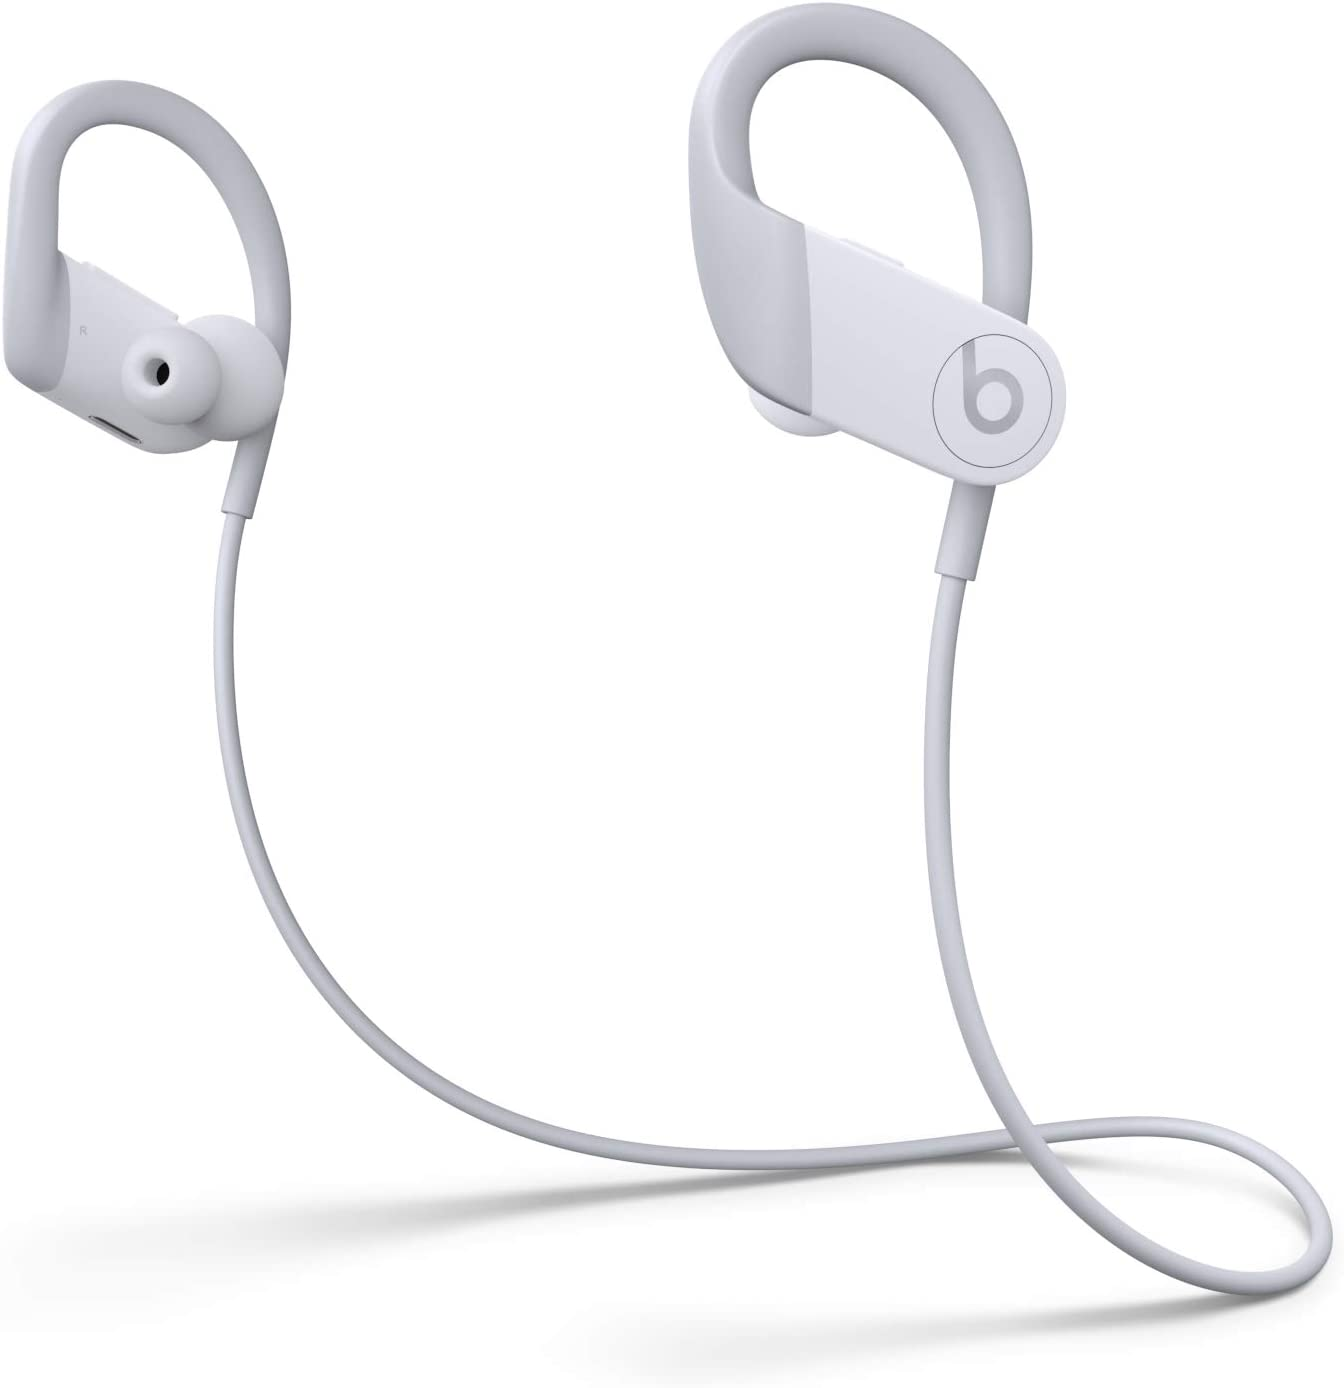 Powerbeats High-Performance Wireless Earphones - Apple H1 Headphone Chip, Class 1 Bluetooth, 15 Hours of Listening Time, Sweat Resistant Earbuds - White (Latest Model)